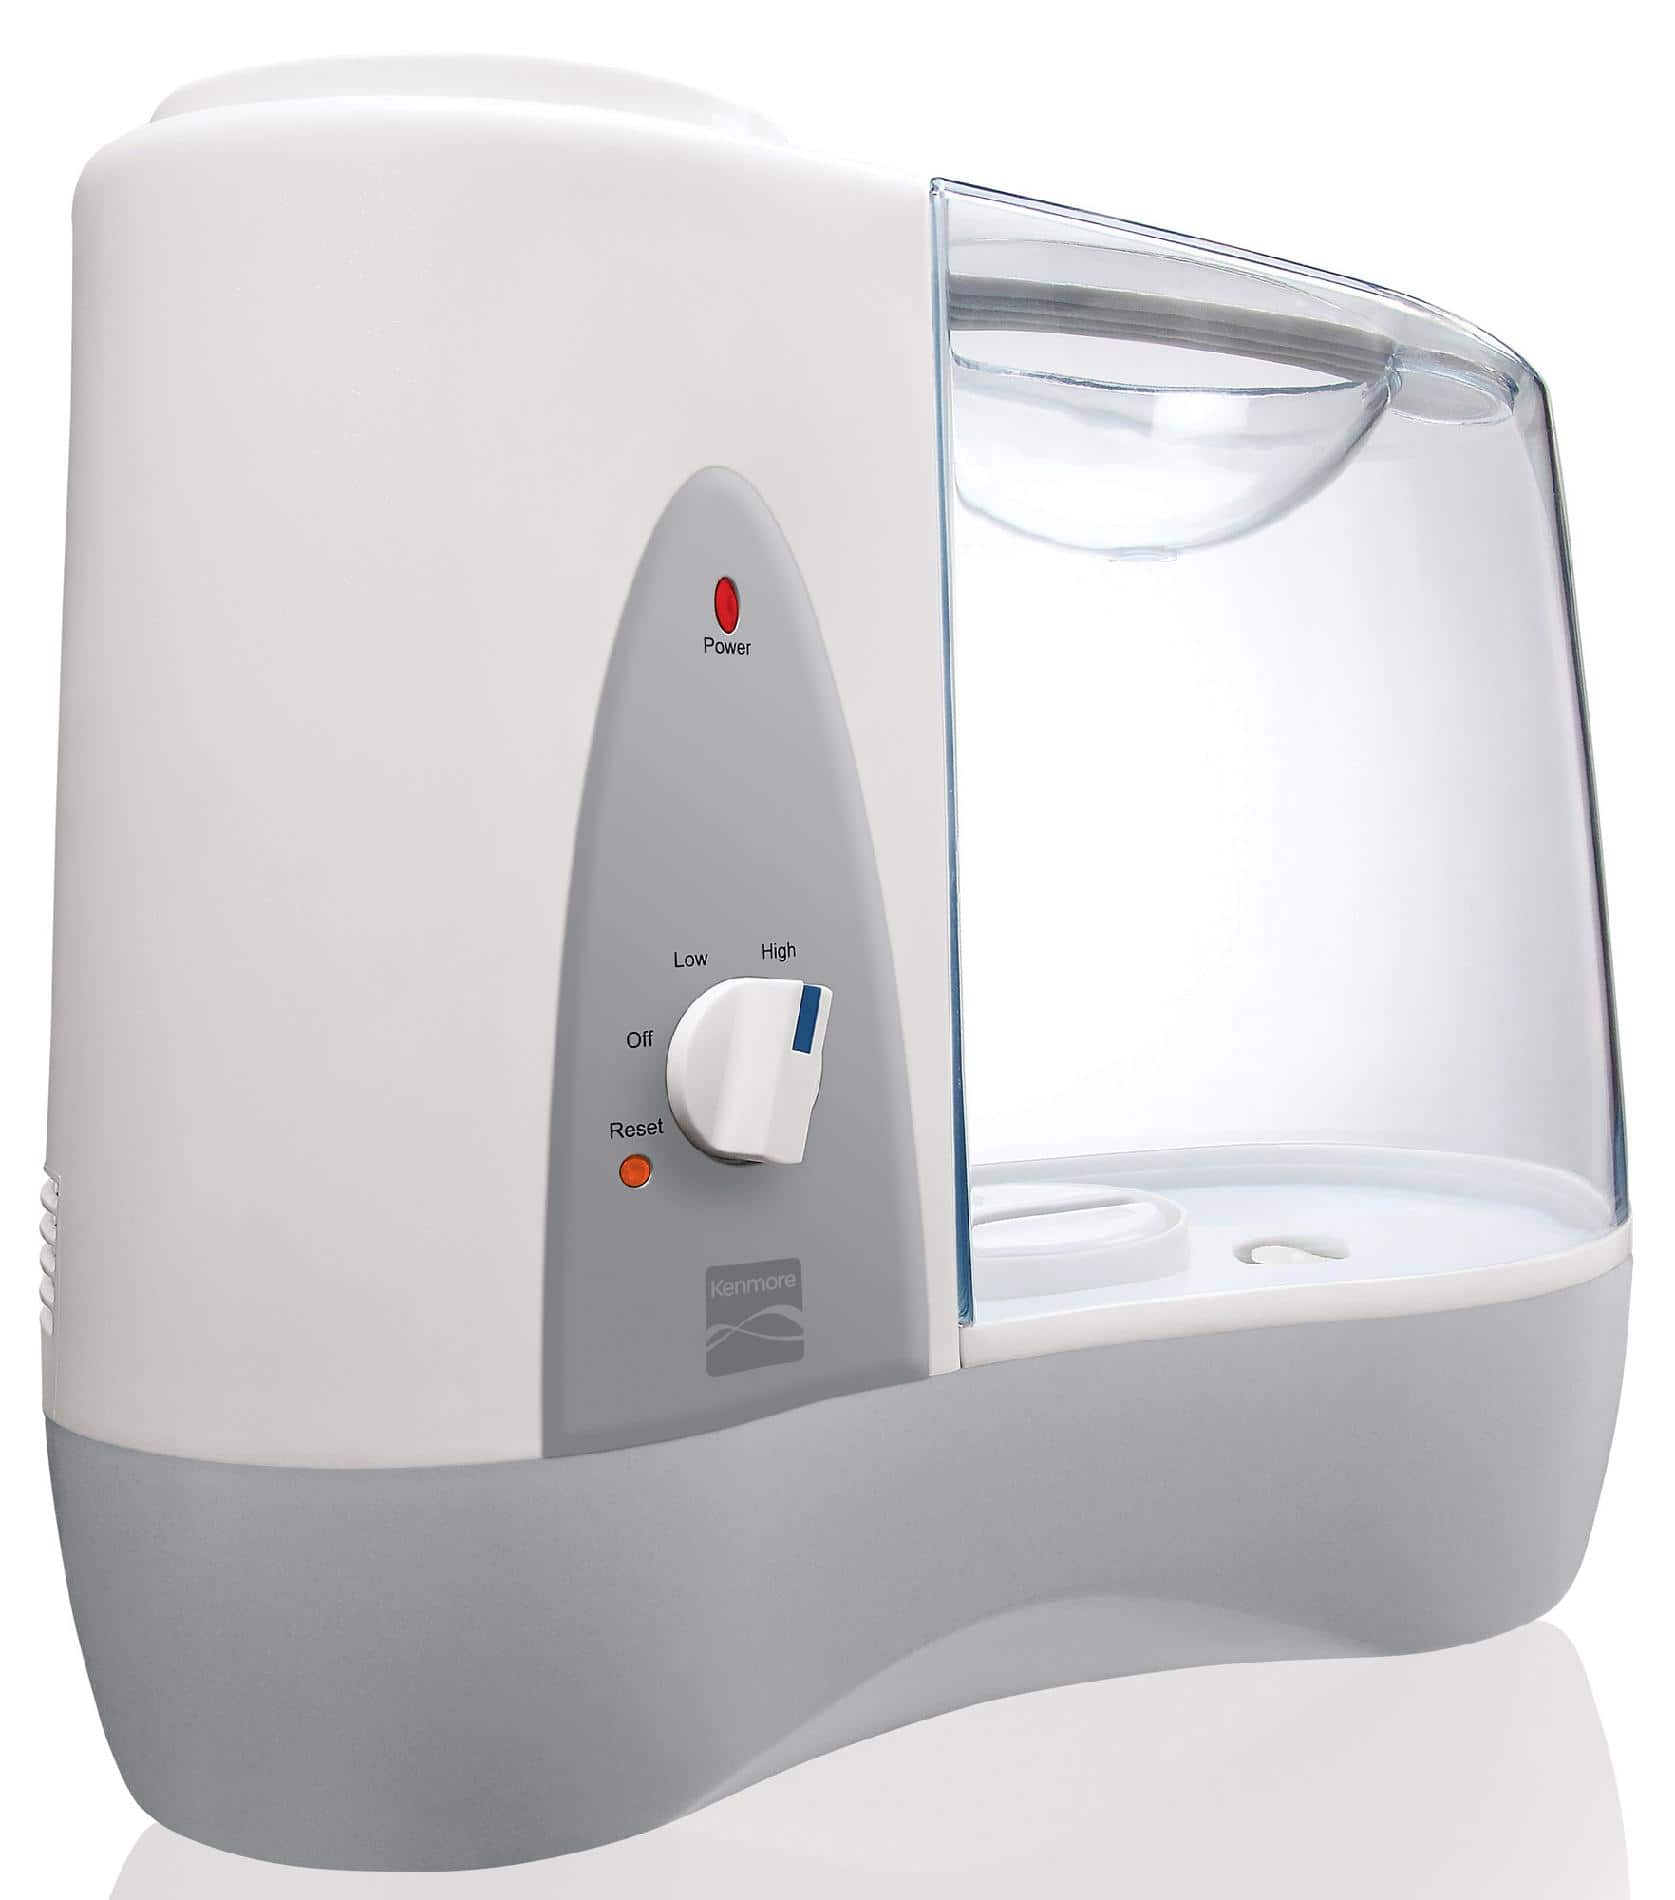 Kenmore 1.1-Gallon Warm-Mist Humidifier